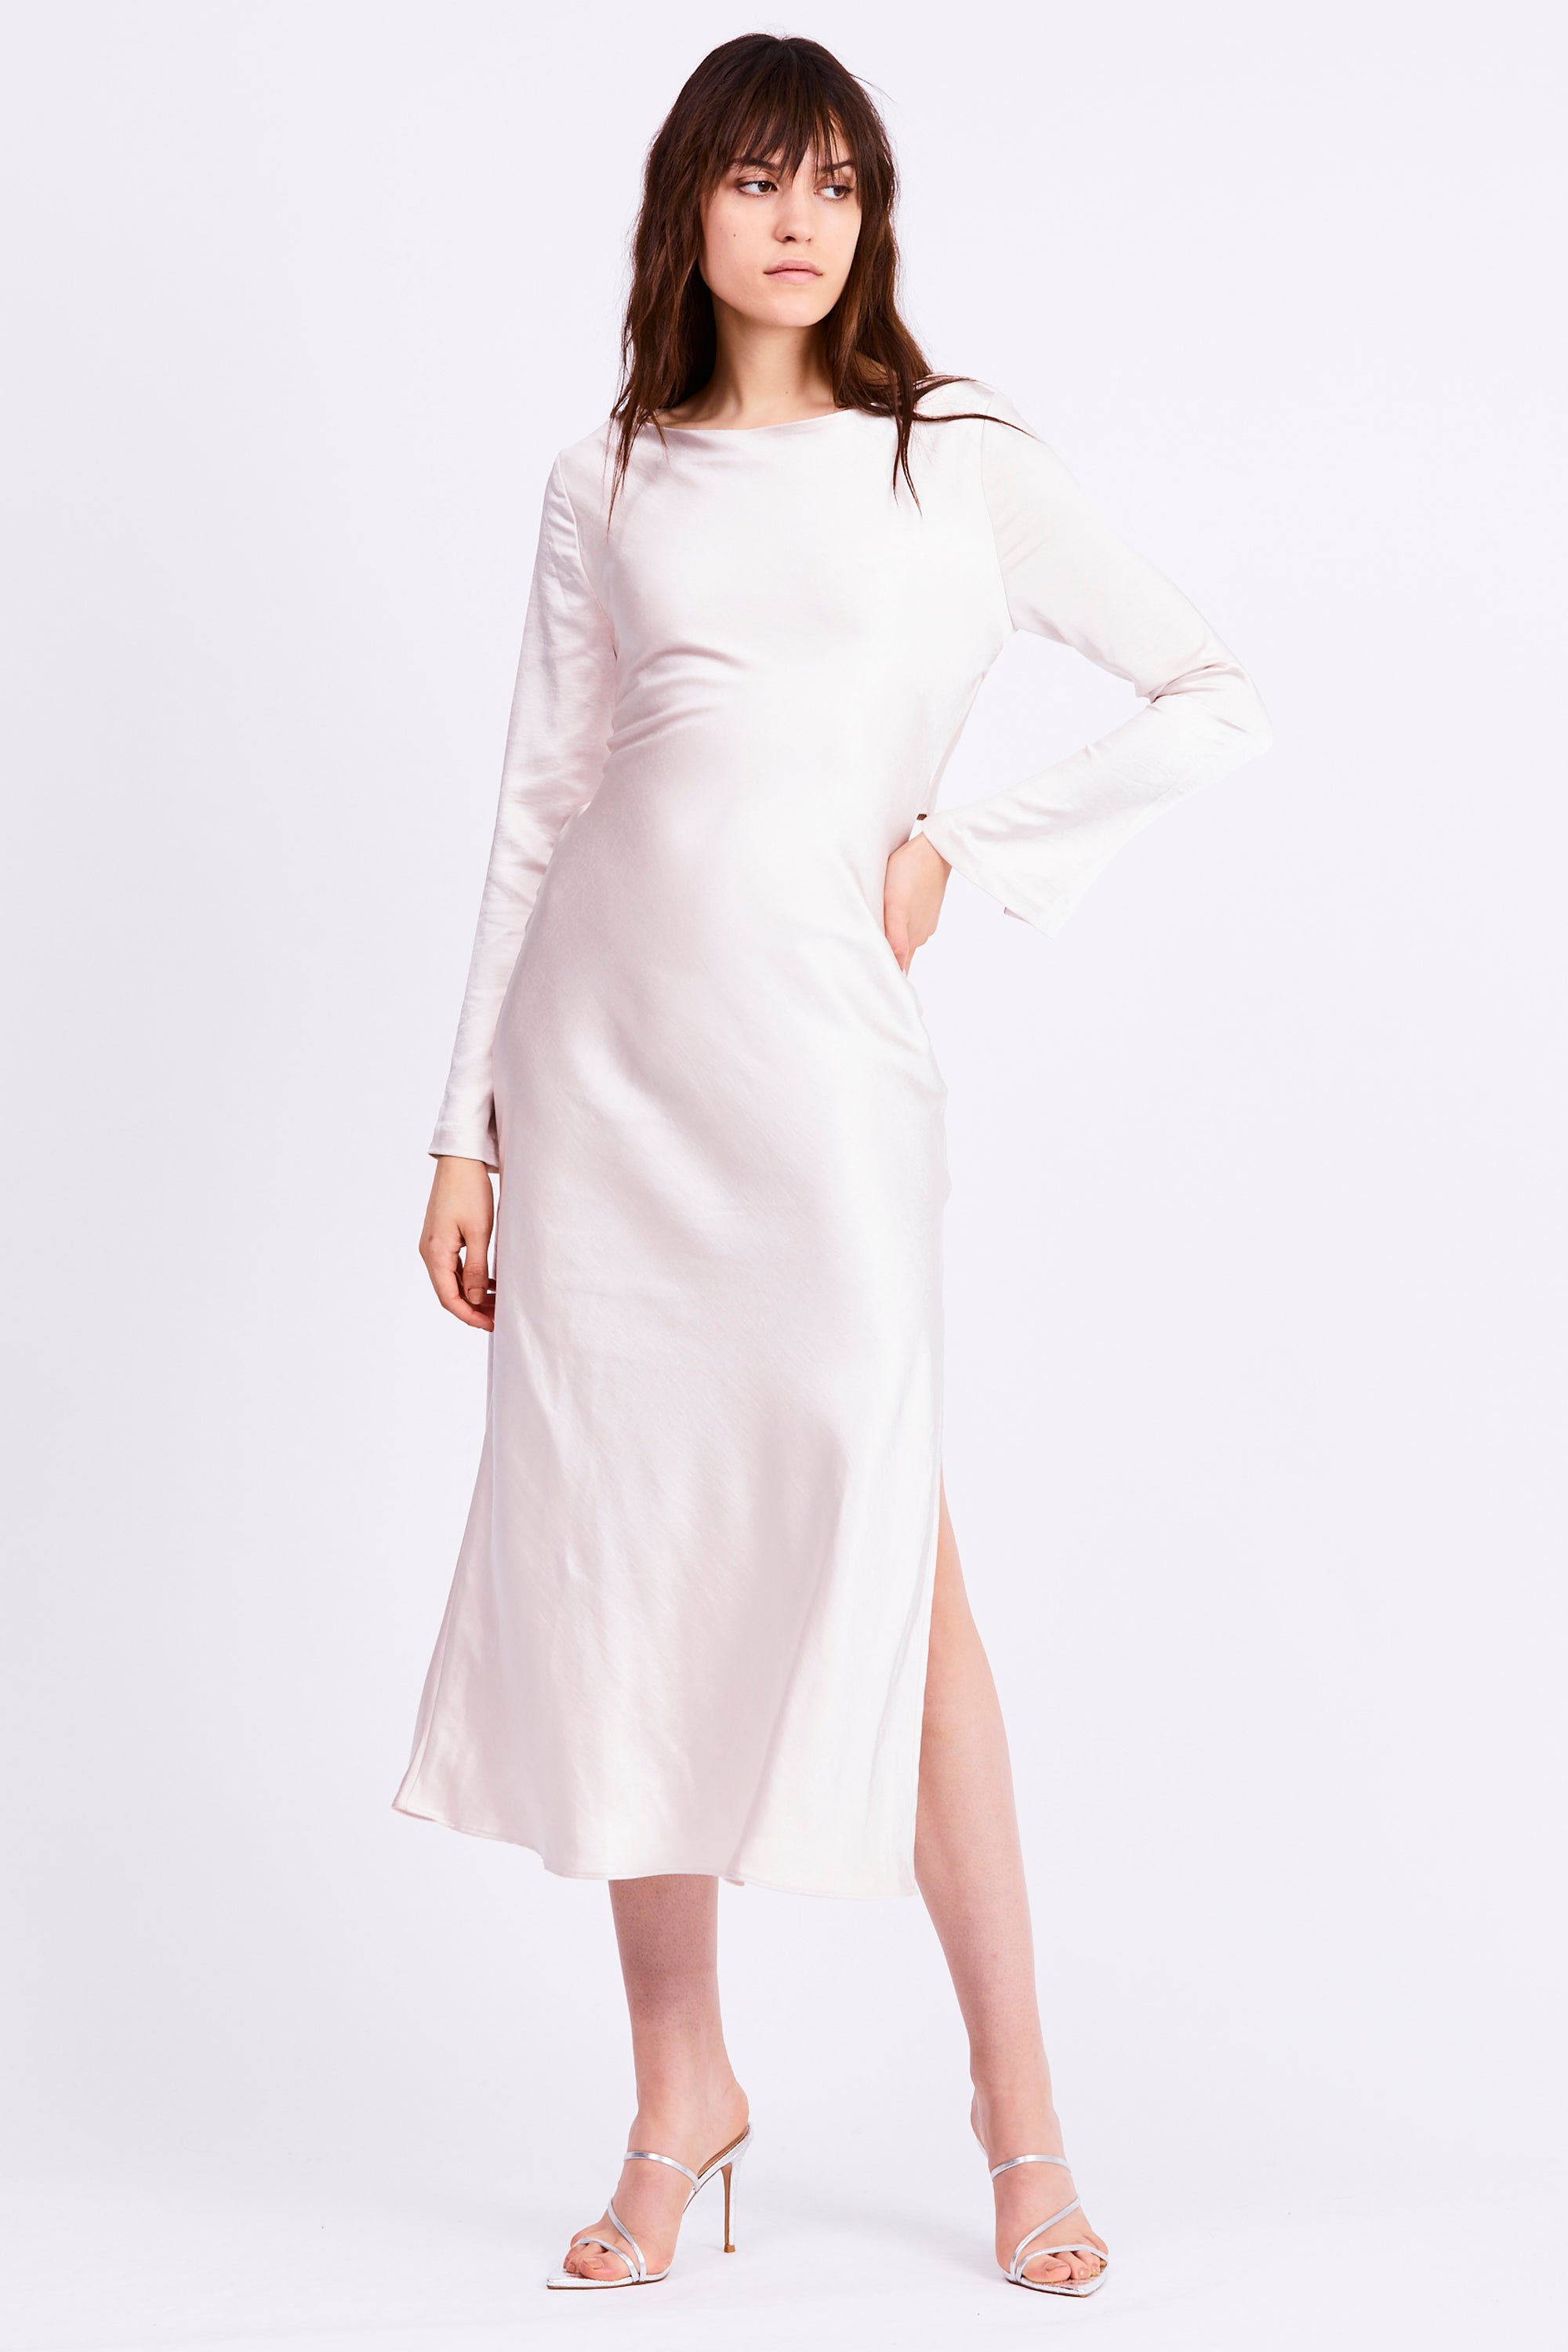 TIE BACK MAXI BIAS DRESS | PEARL